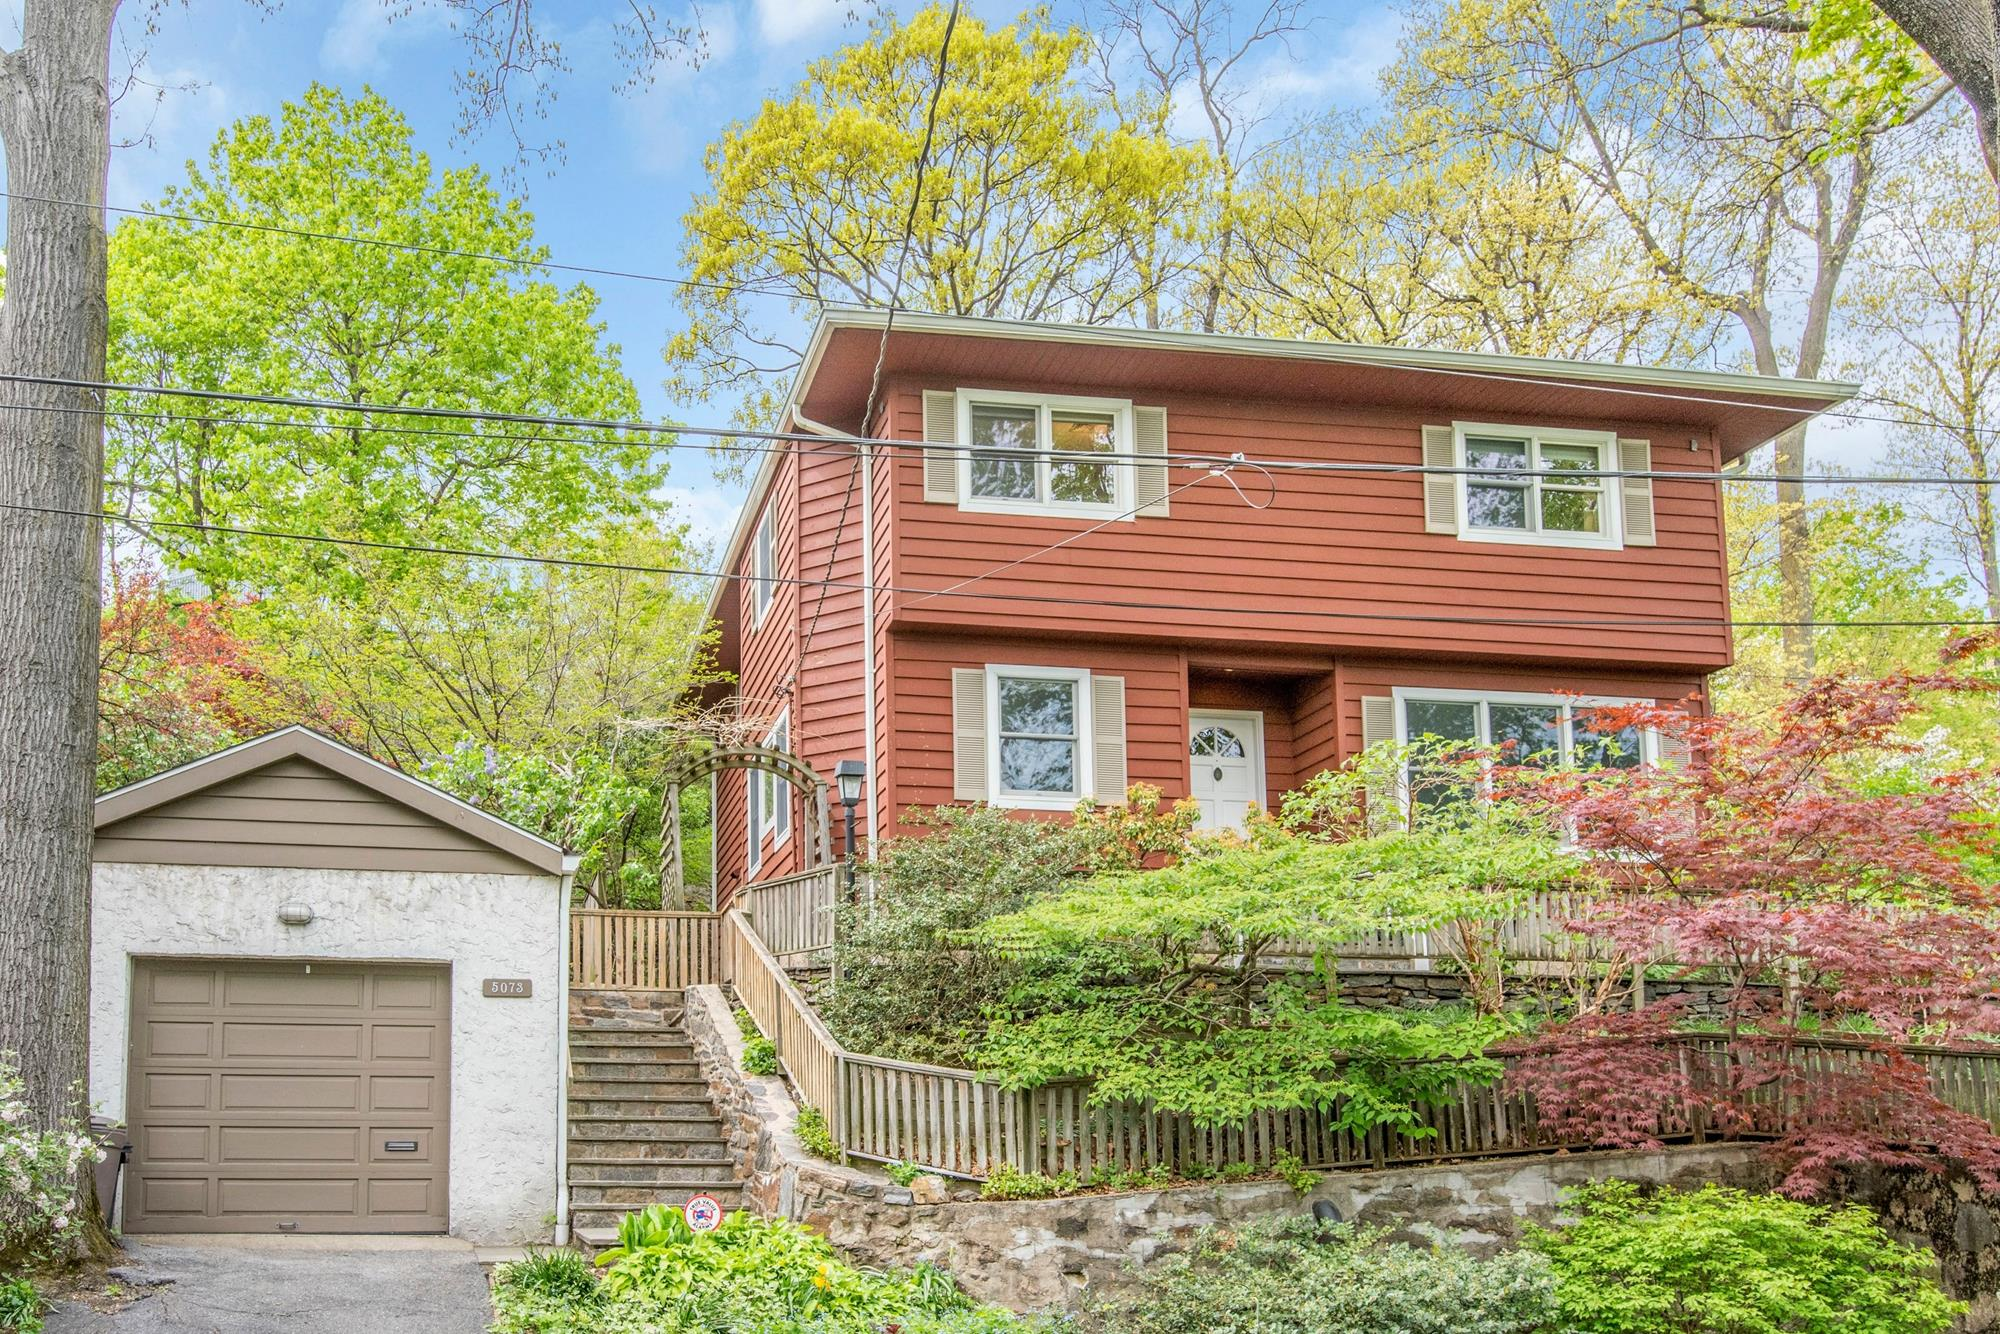 Spacious 3-Bd. House w/ Family Rm. & 2nd Master Bd.; Large Grounds w/ Patio & Garden at 5073 Fieldston Road